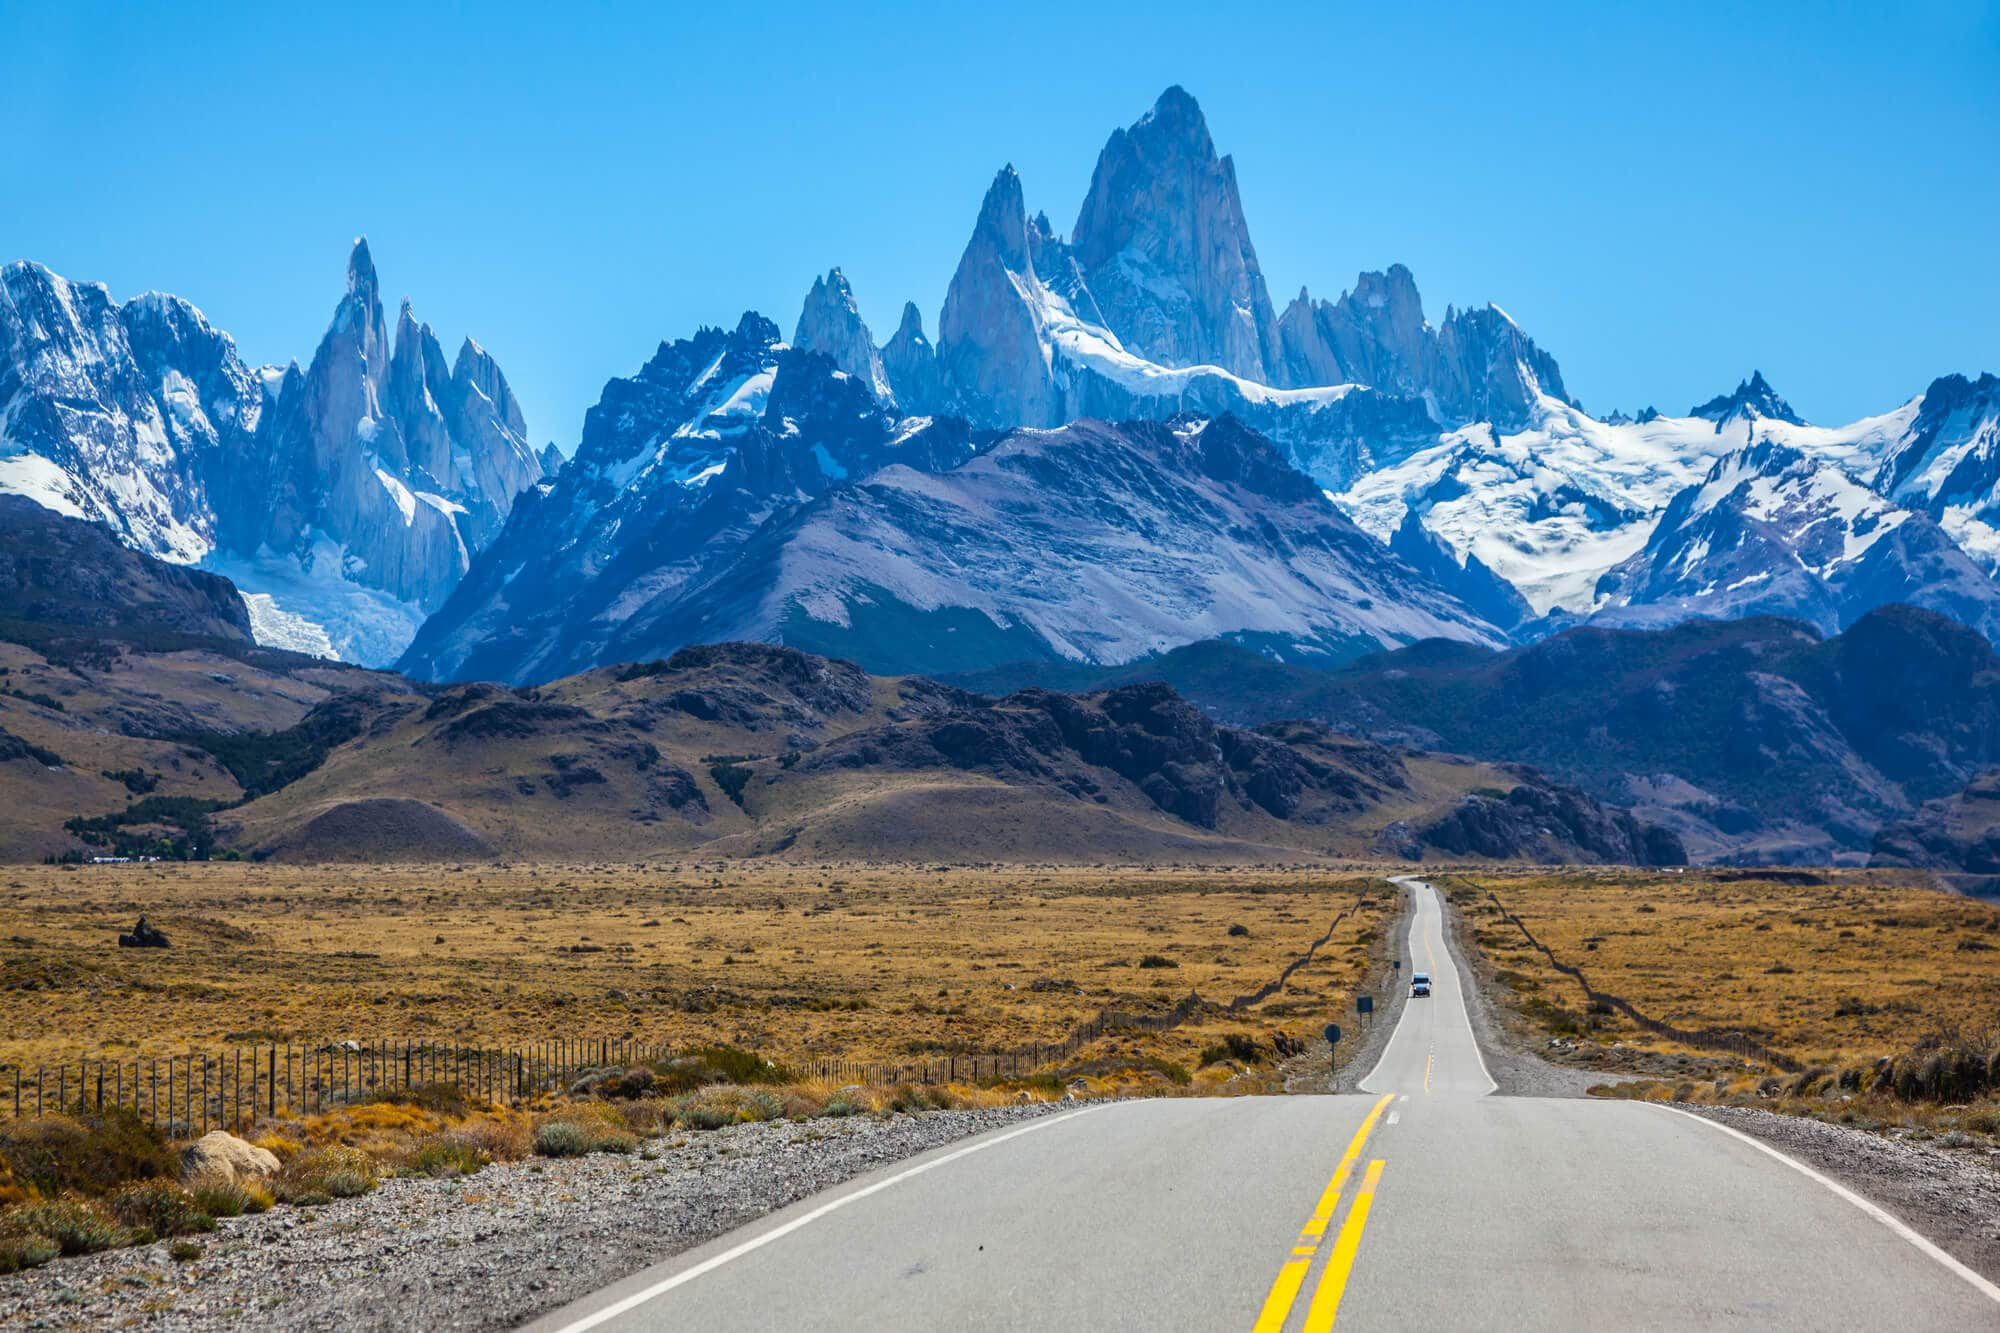 A highway leads from the photographer to a mountain range of rocky peaks and a bright blue sky.